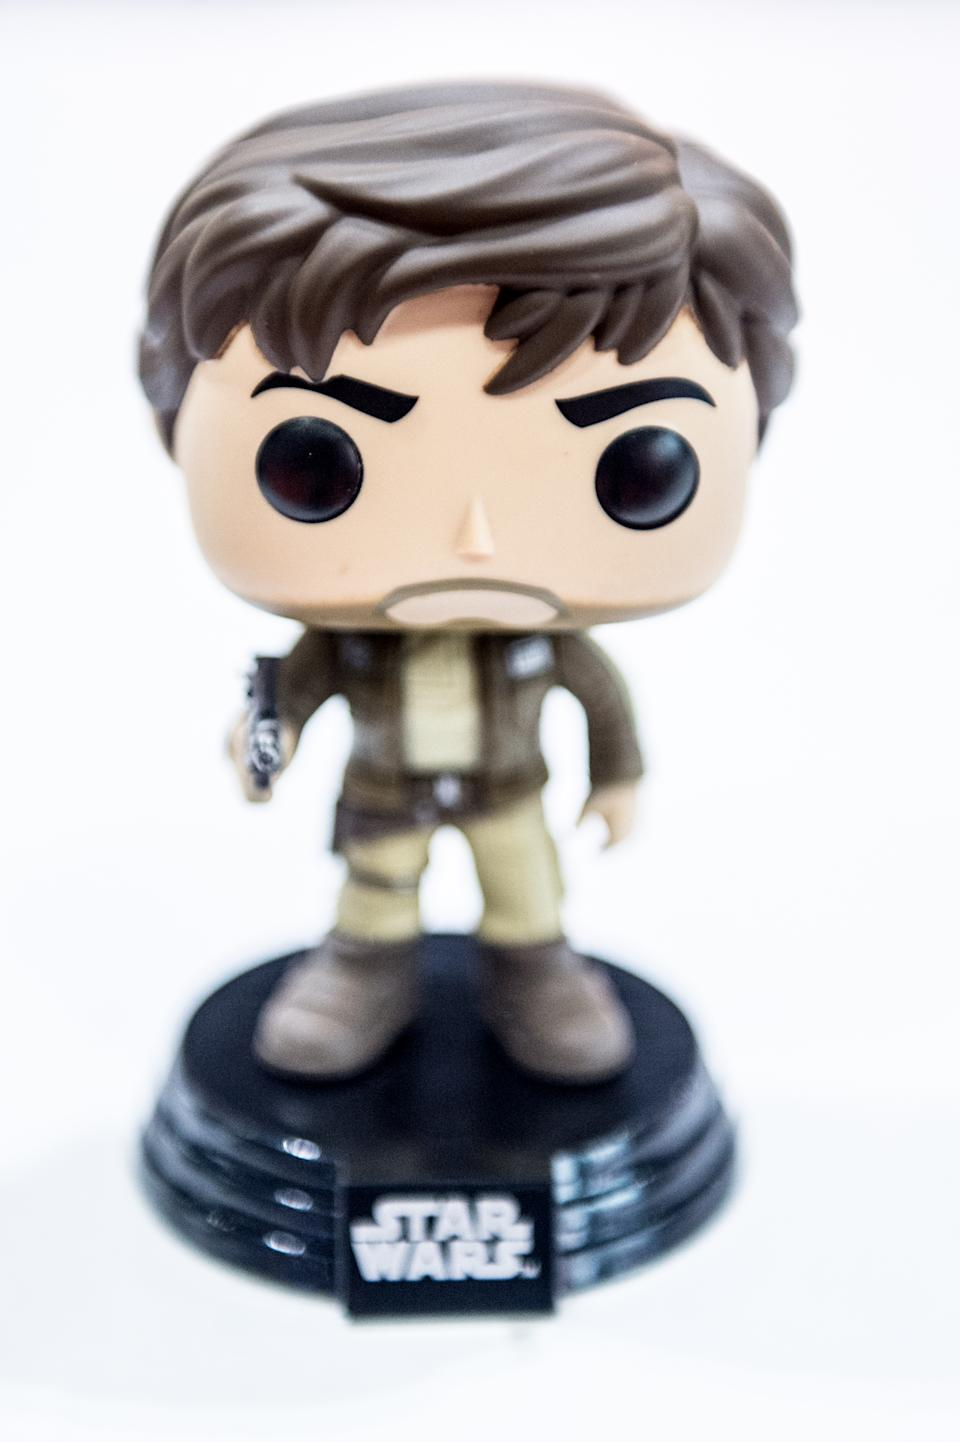 LONDON, ENGLAND - OCTOBER 28:  The Comic con exclusive Captain Cassain Andor from Star Wars Funko Pop only availabe at the show this weekend MCM London Comic Con at ExCel on October 28, 2016 in London, England.  (Photo by Ollie Millington/WireImage)